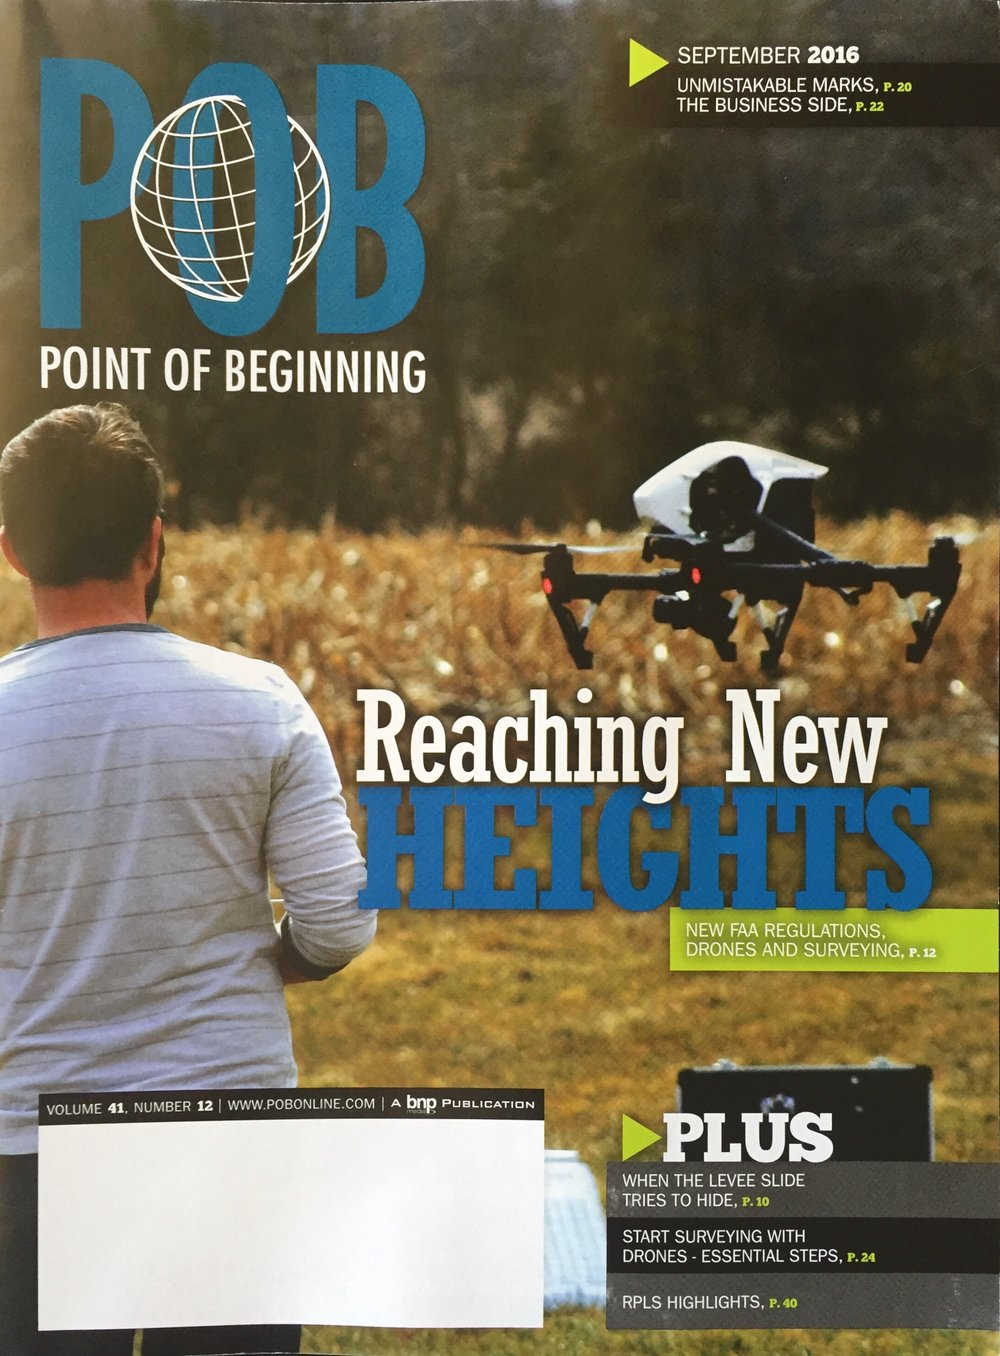 POB drone survey article